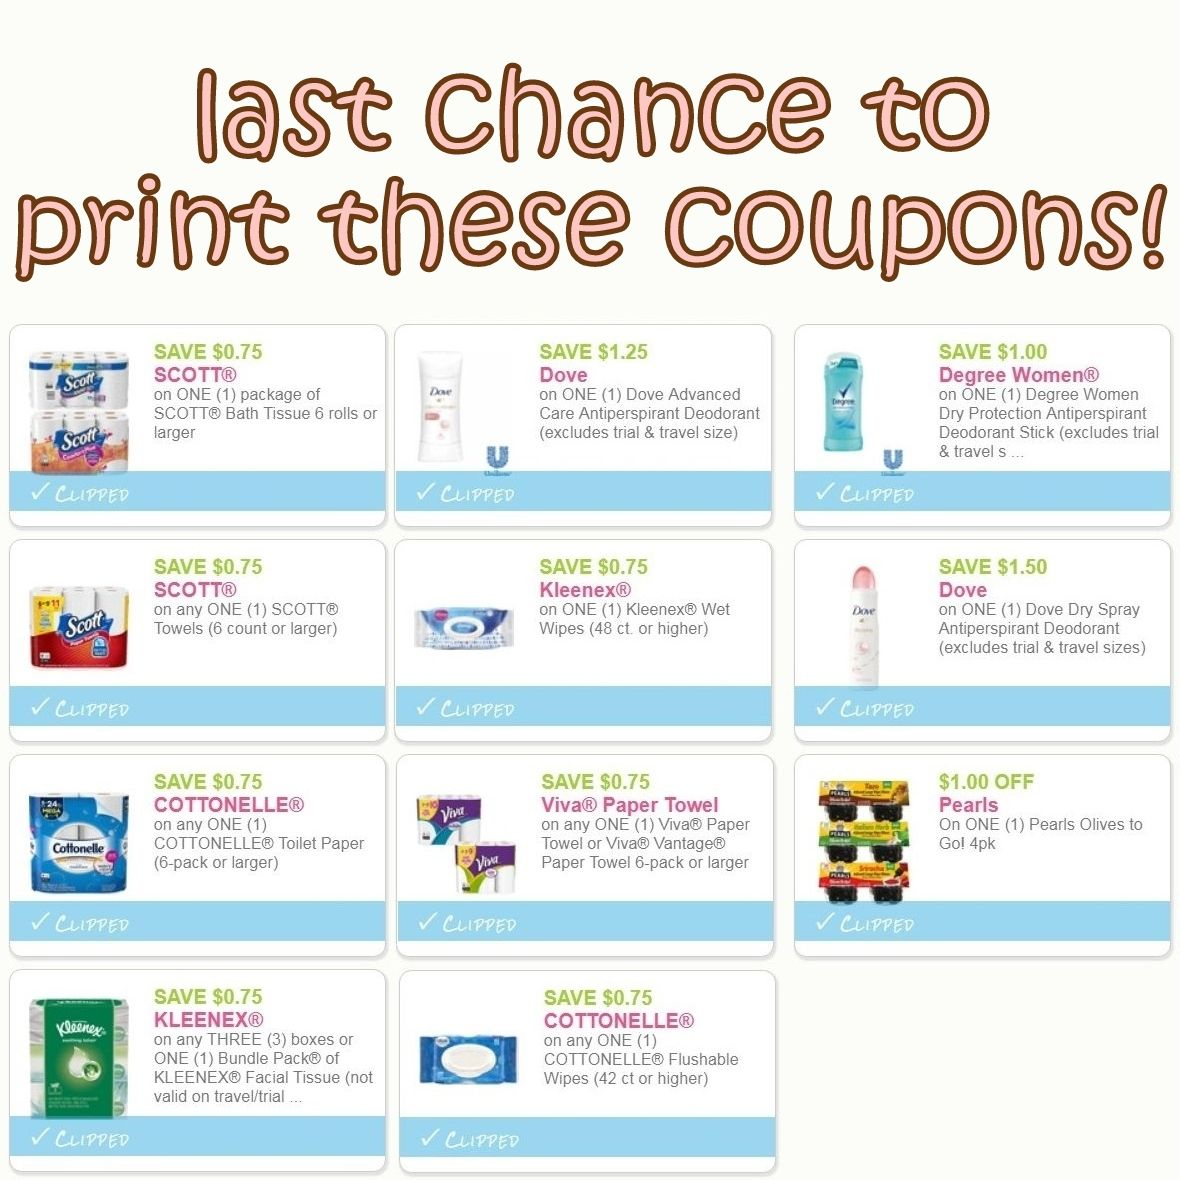 photograph relating to Cottonelle Coupons Printable named Pin as a result of Erica Hart upon i ♥ discount coupons Printable discount coupons